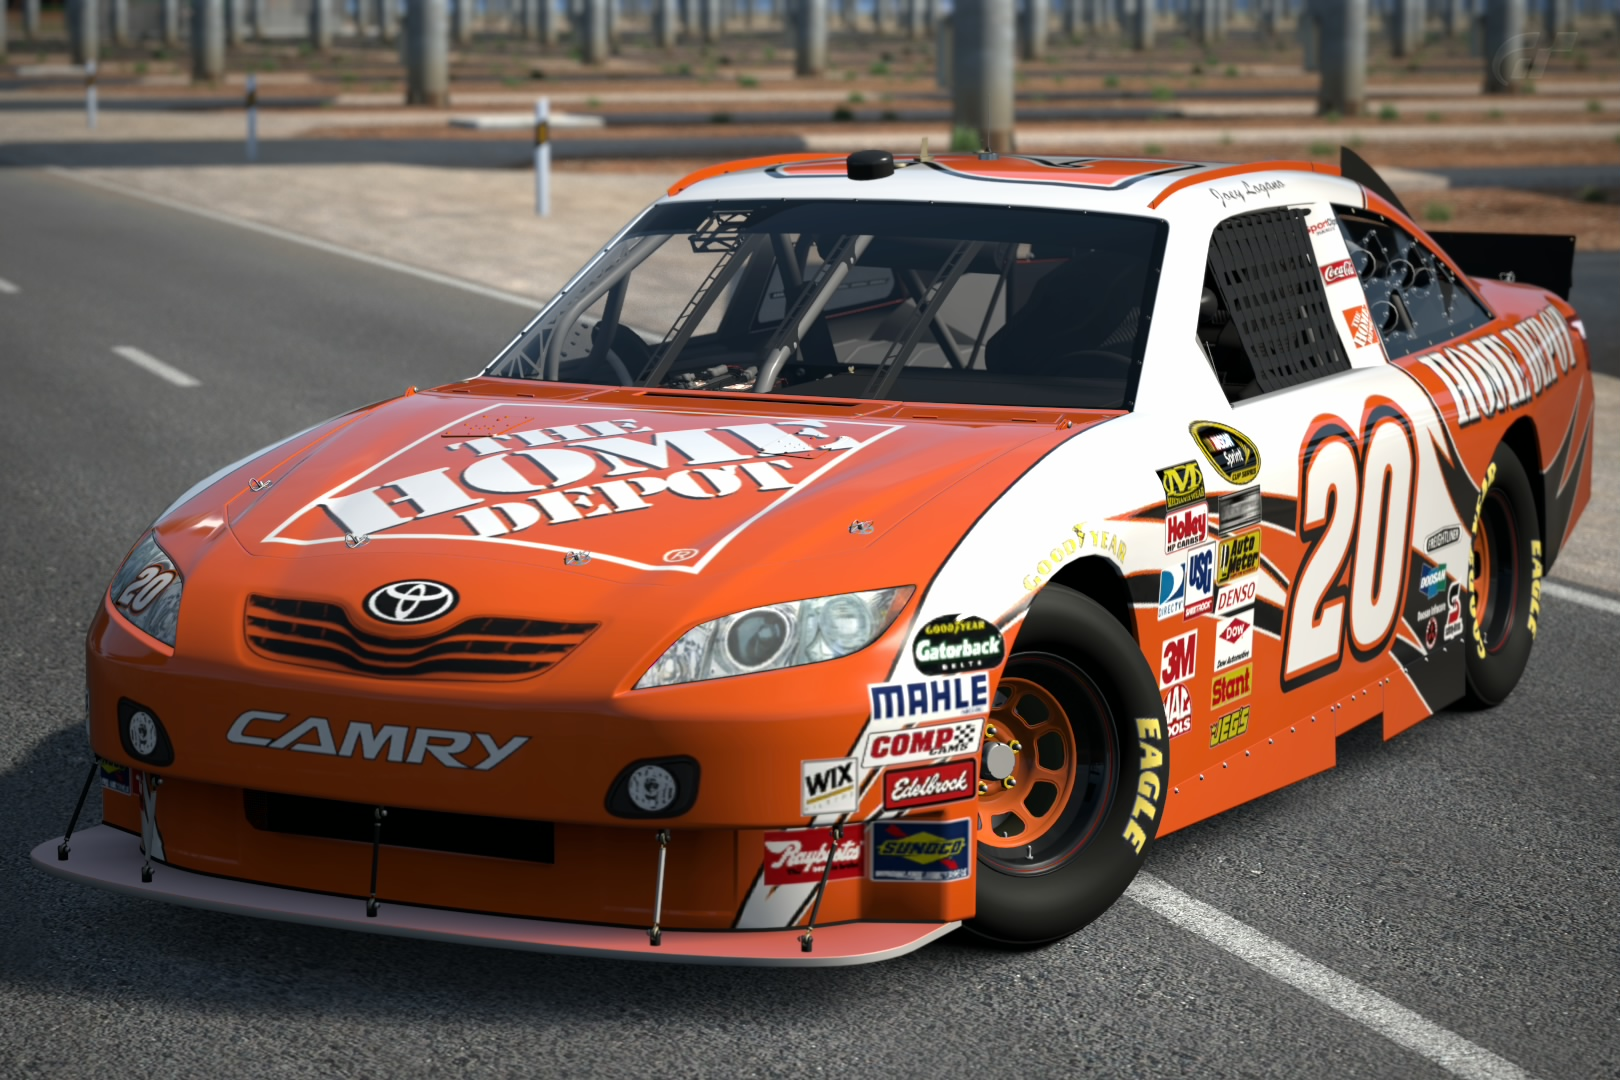 2010 joey logano 20 the home depot toyota camry 39 10 gran turismo wiki fandom powered by wikia. Black Bedroom Furniture Sets. Home Design Ideas